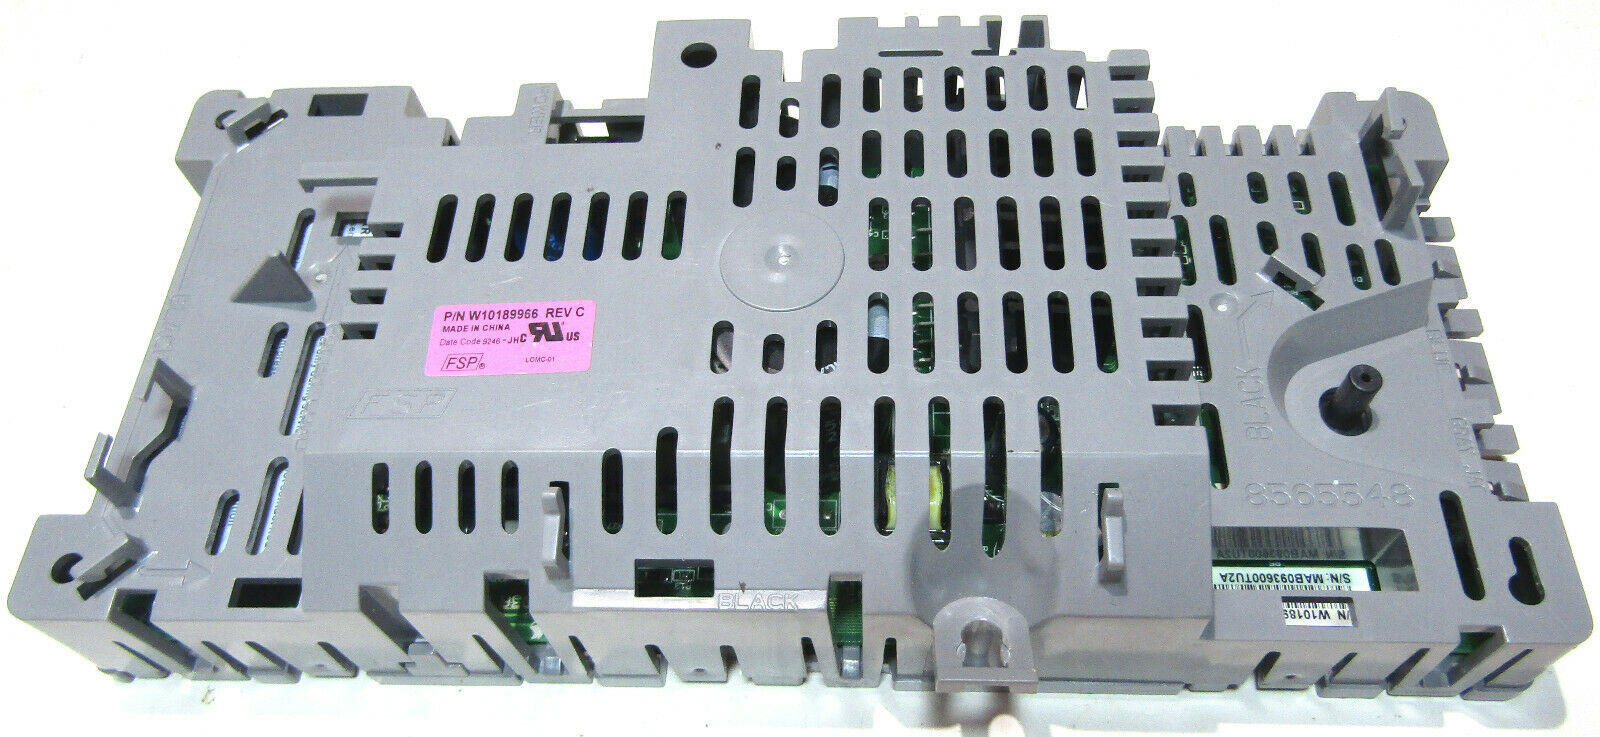 W10189966 Rev C WHIRLPOOL WASHER CONTROL BOARD OEM ***FREE 1 YEAR WARRANTY*** l4